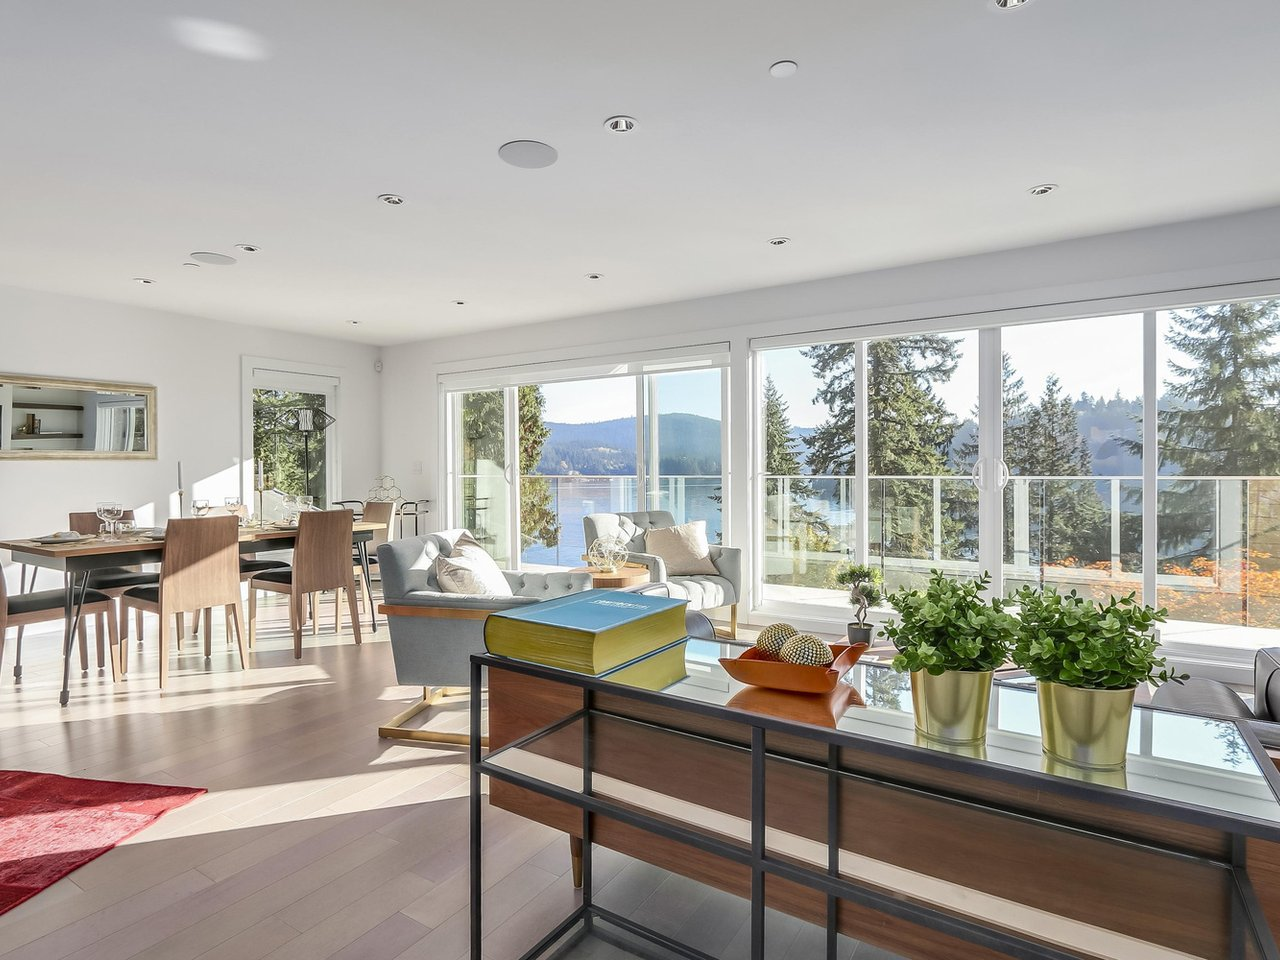 2867 Panorama,North Vancouver,BC,Canada V7G 1V7,4 Bedrooms Bedrooms,3 BathroomsBathrooms,Single Family House,Panorama Villa,Panorama ,4,1325